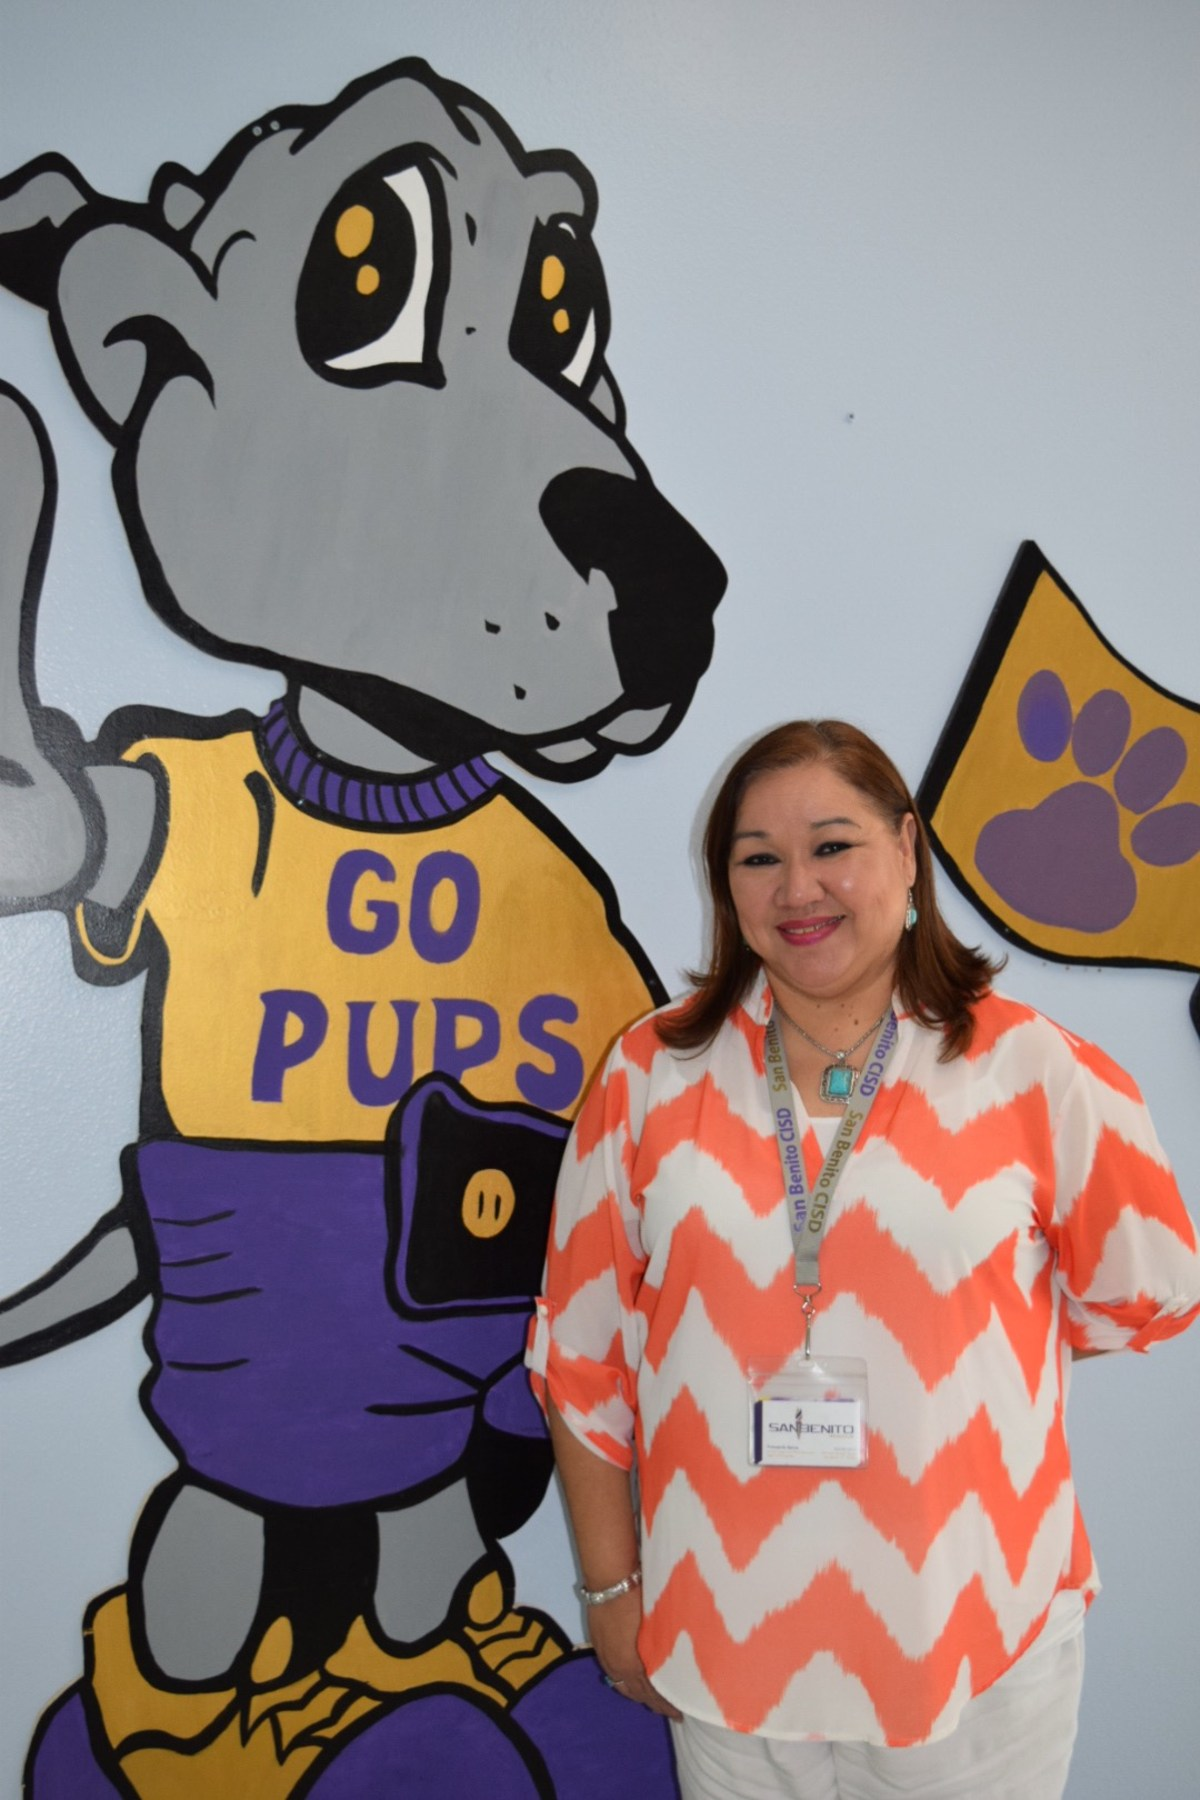 Mrs. Frances Q. Garcia. Mrs. Garcia is the new Ed Downs Elementary Parent Specialist